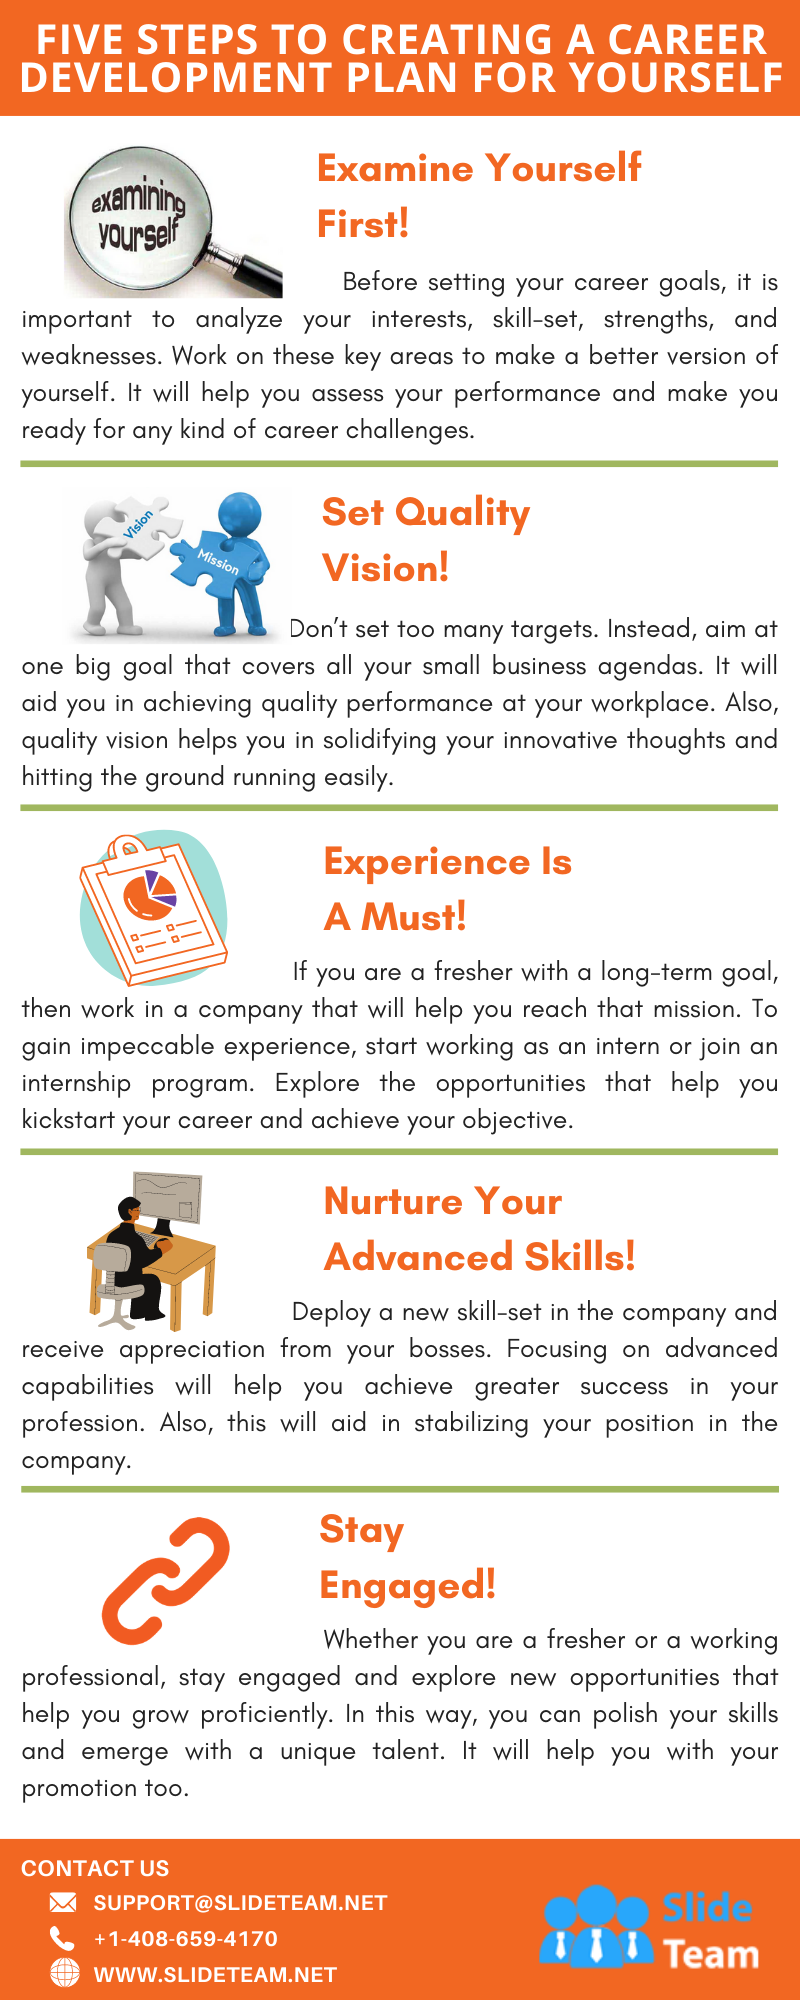 Five Steps To Creating A Career Development Plan For Yourself #infographic #Education #Career Development #infographics #Career #Infographic